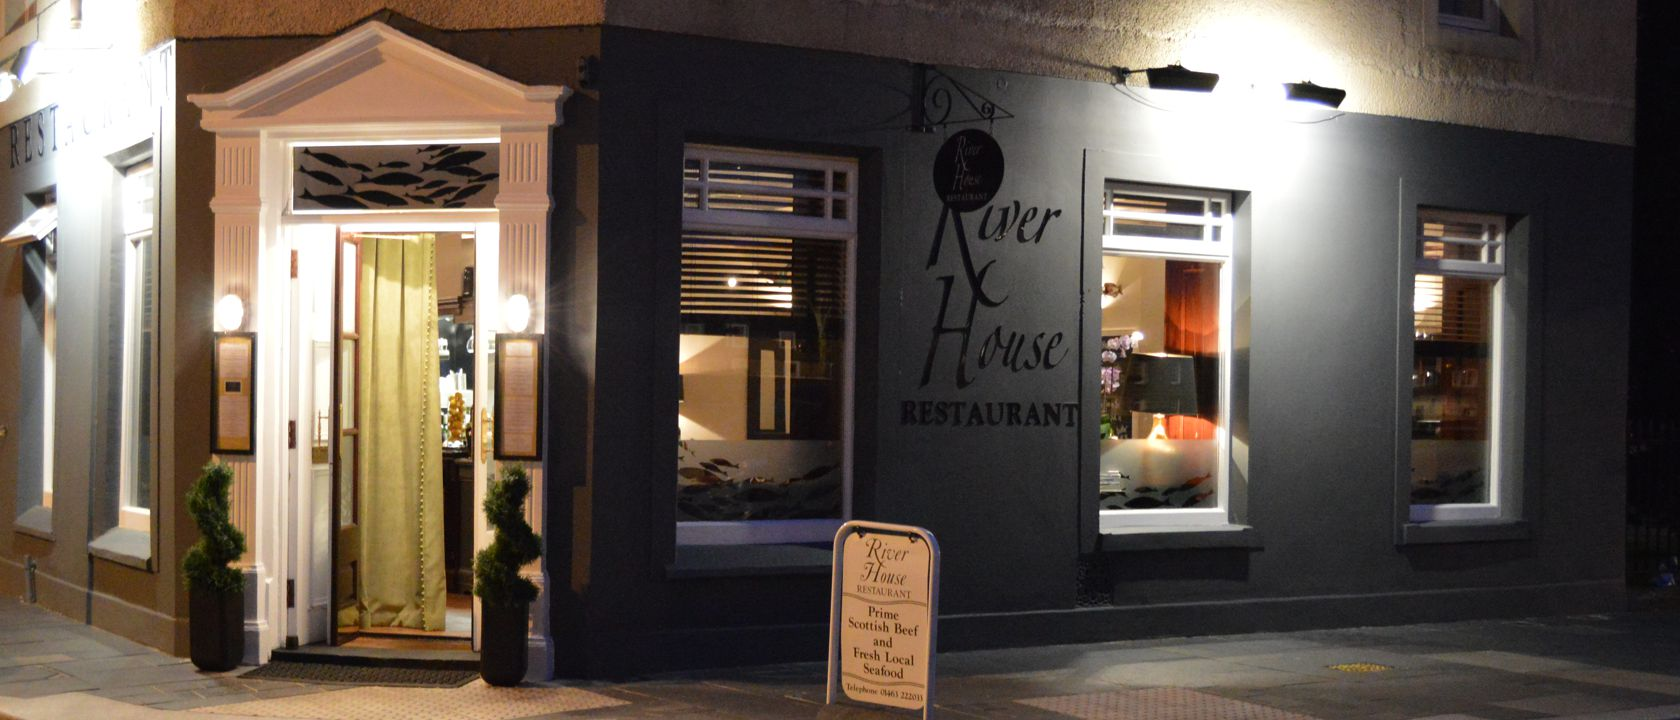 Design House Inverness Reviews River Restaurant U2013 Quality Dining In The Heart Of